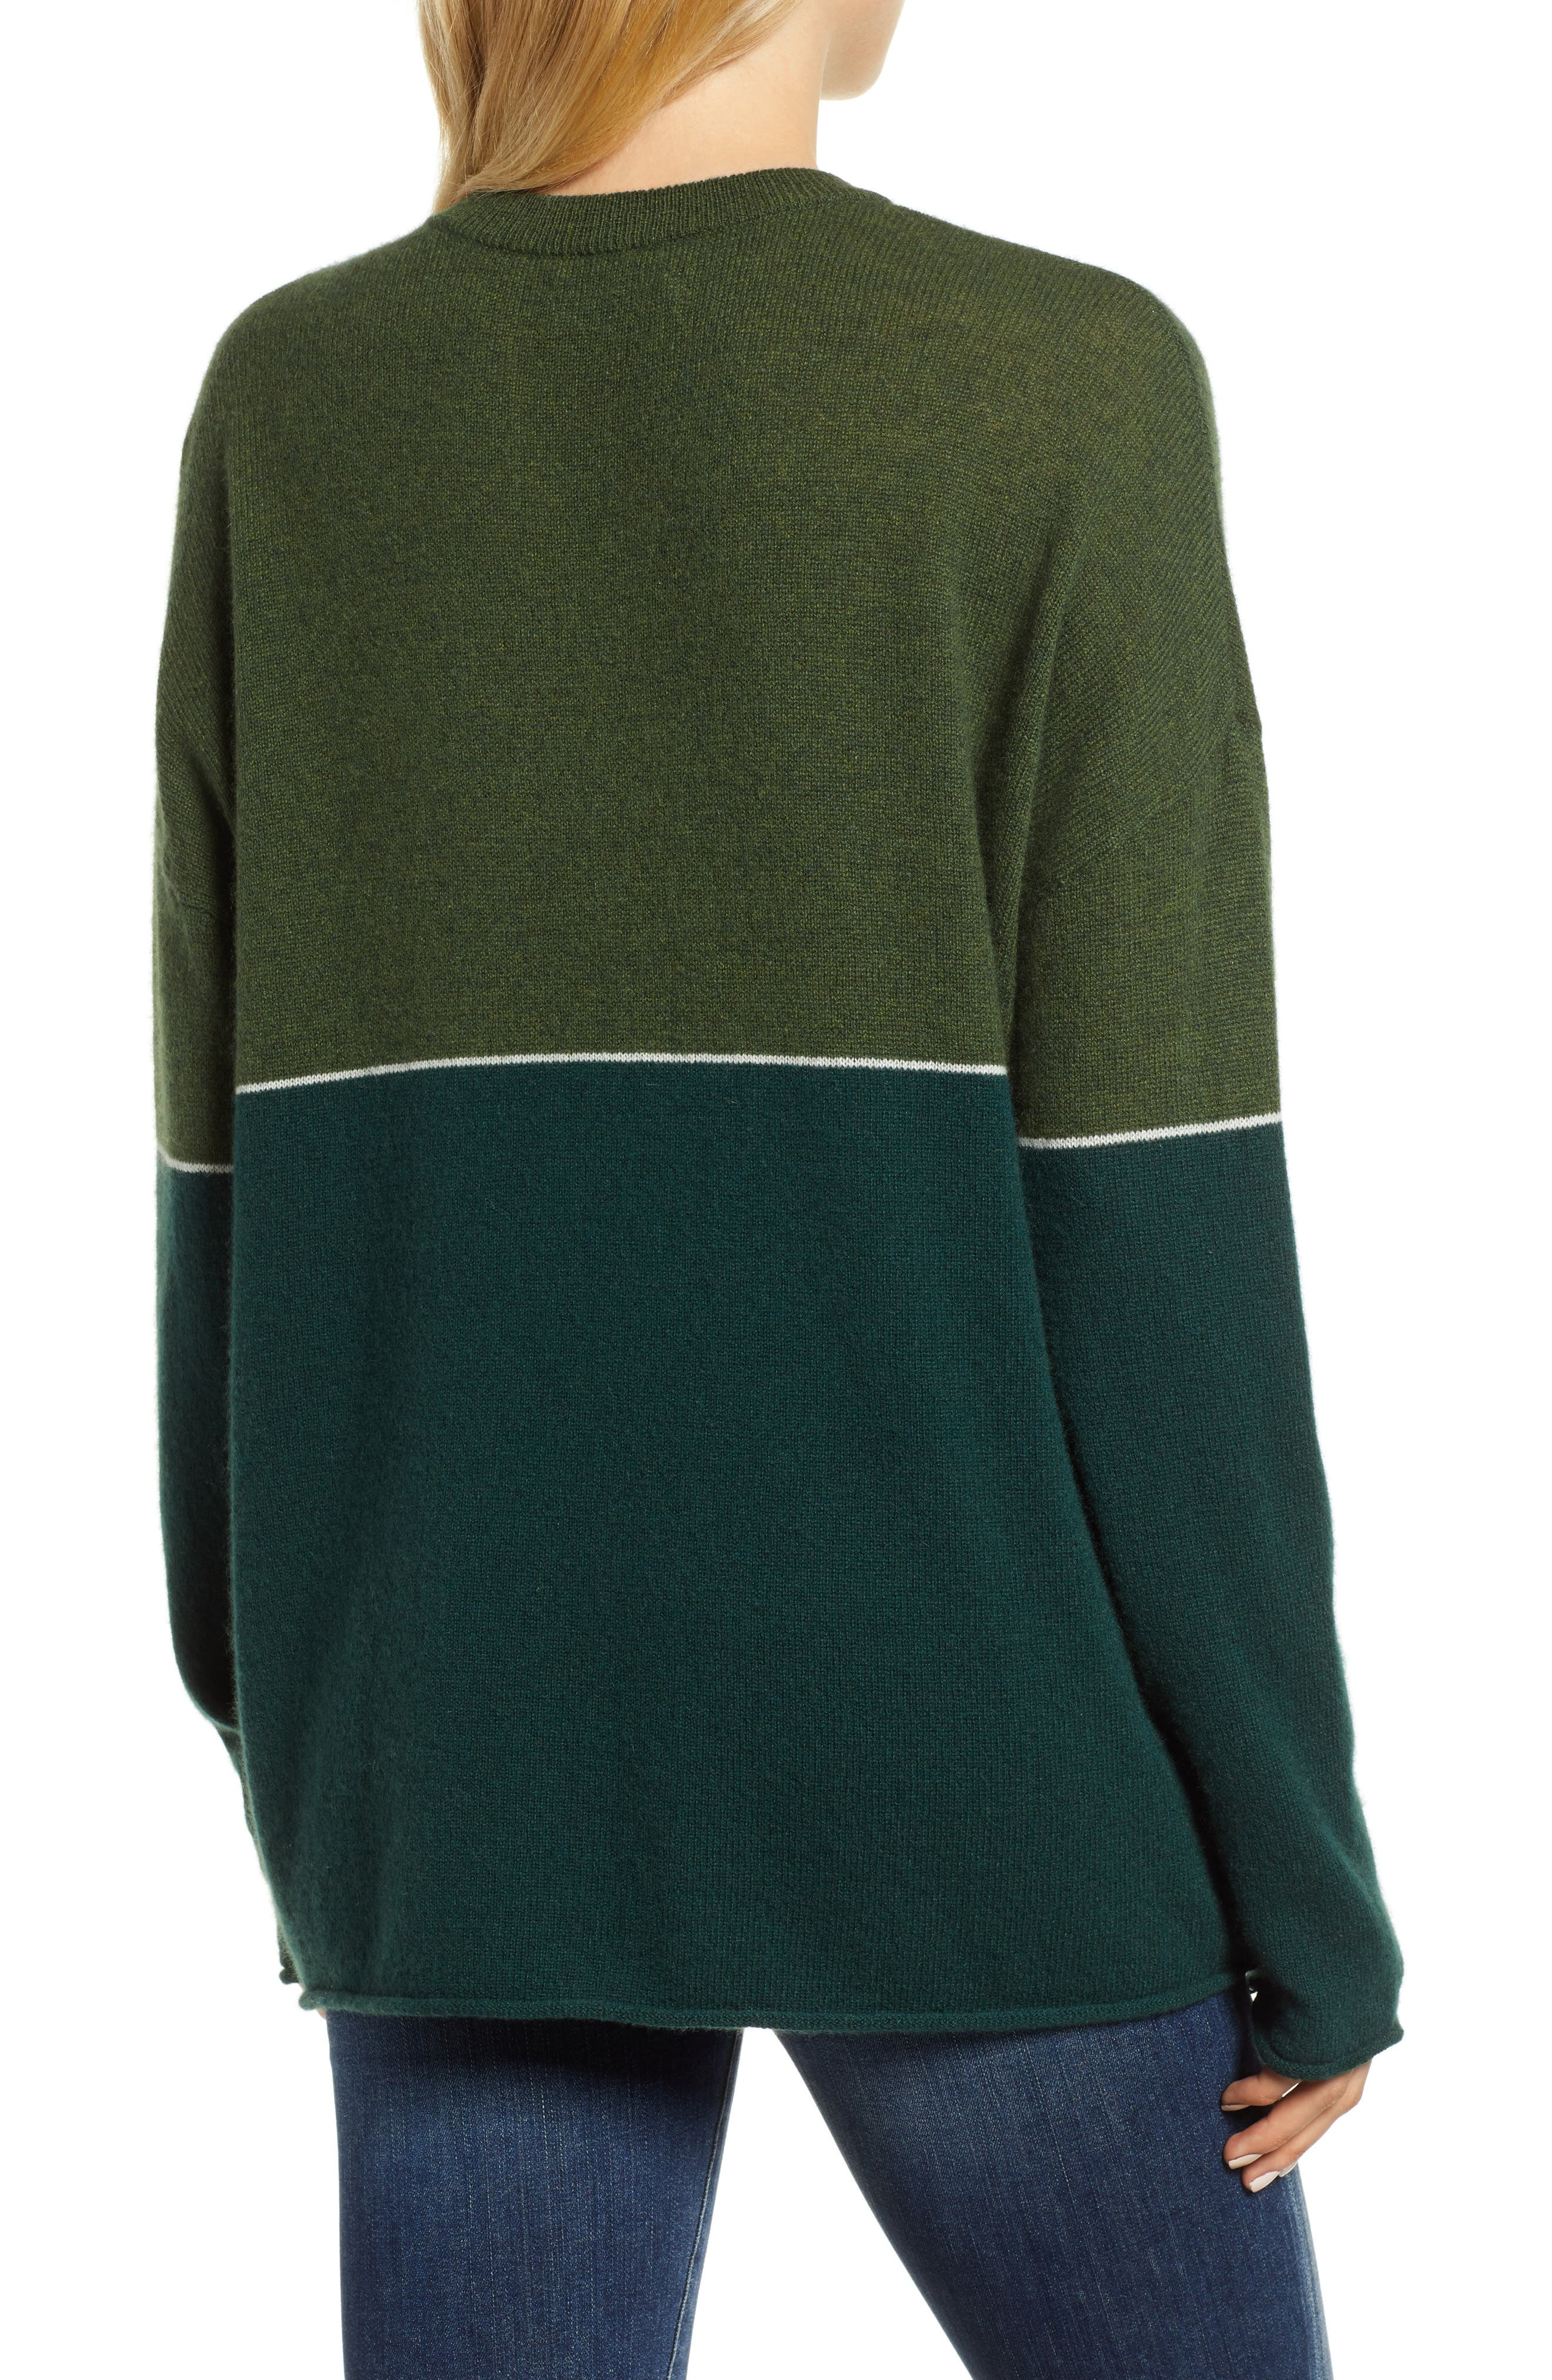 Cashmere Colorblock Sweater,                             Alternate thumbnail 2, color,                             FOREST/ ARMY